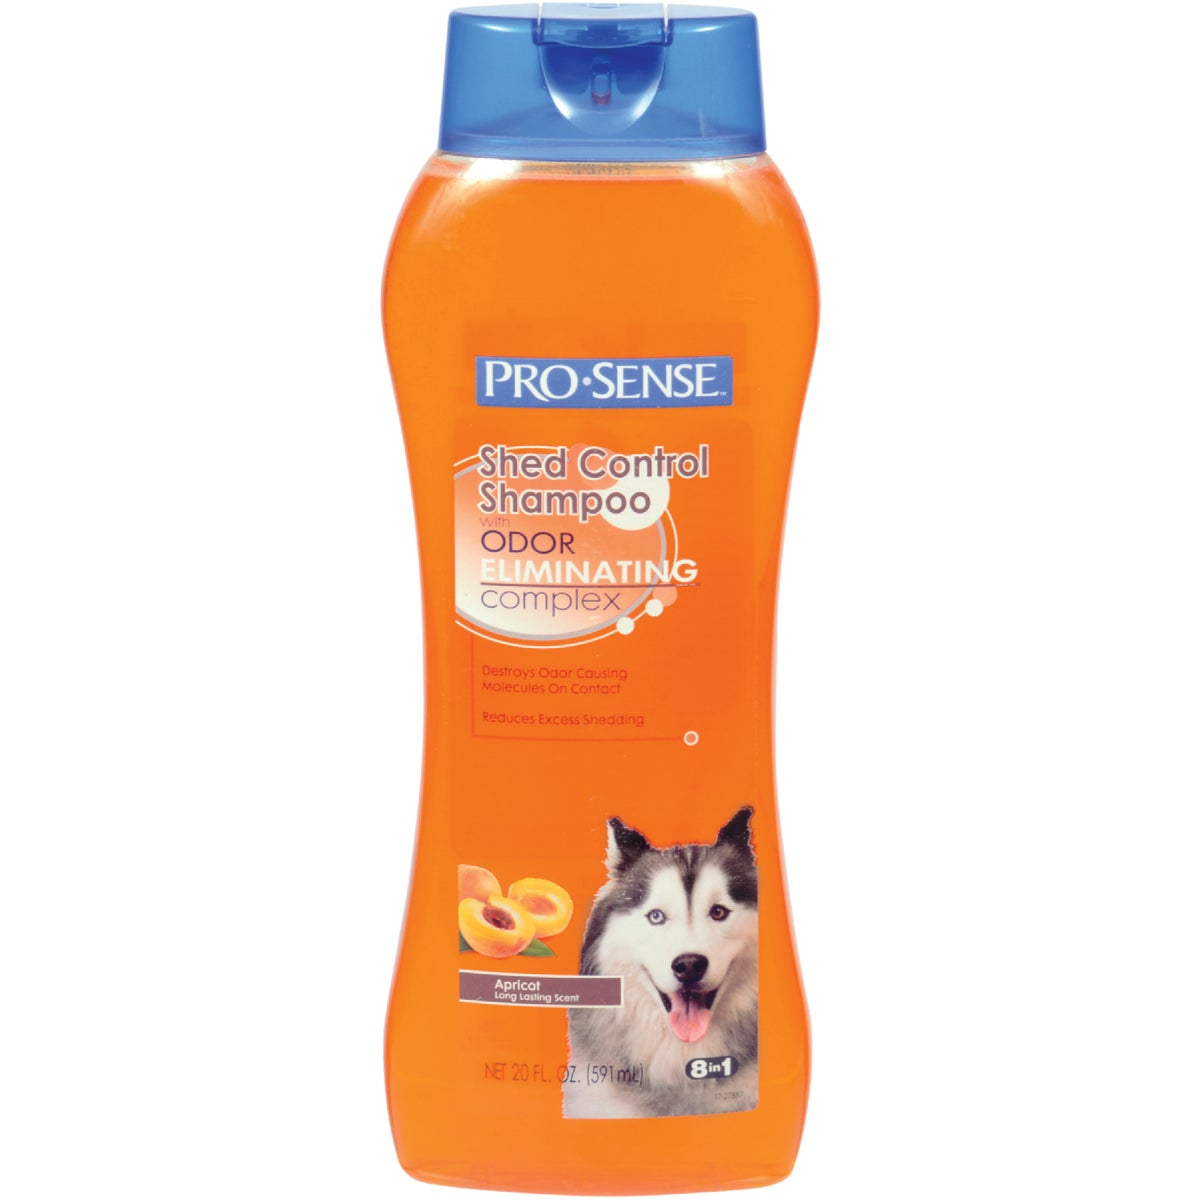 20OZ SHED CONTRL SHAMPOO - P-82725 by United Pet Group